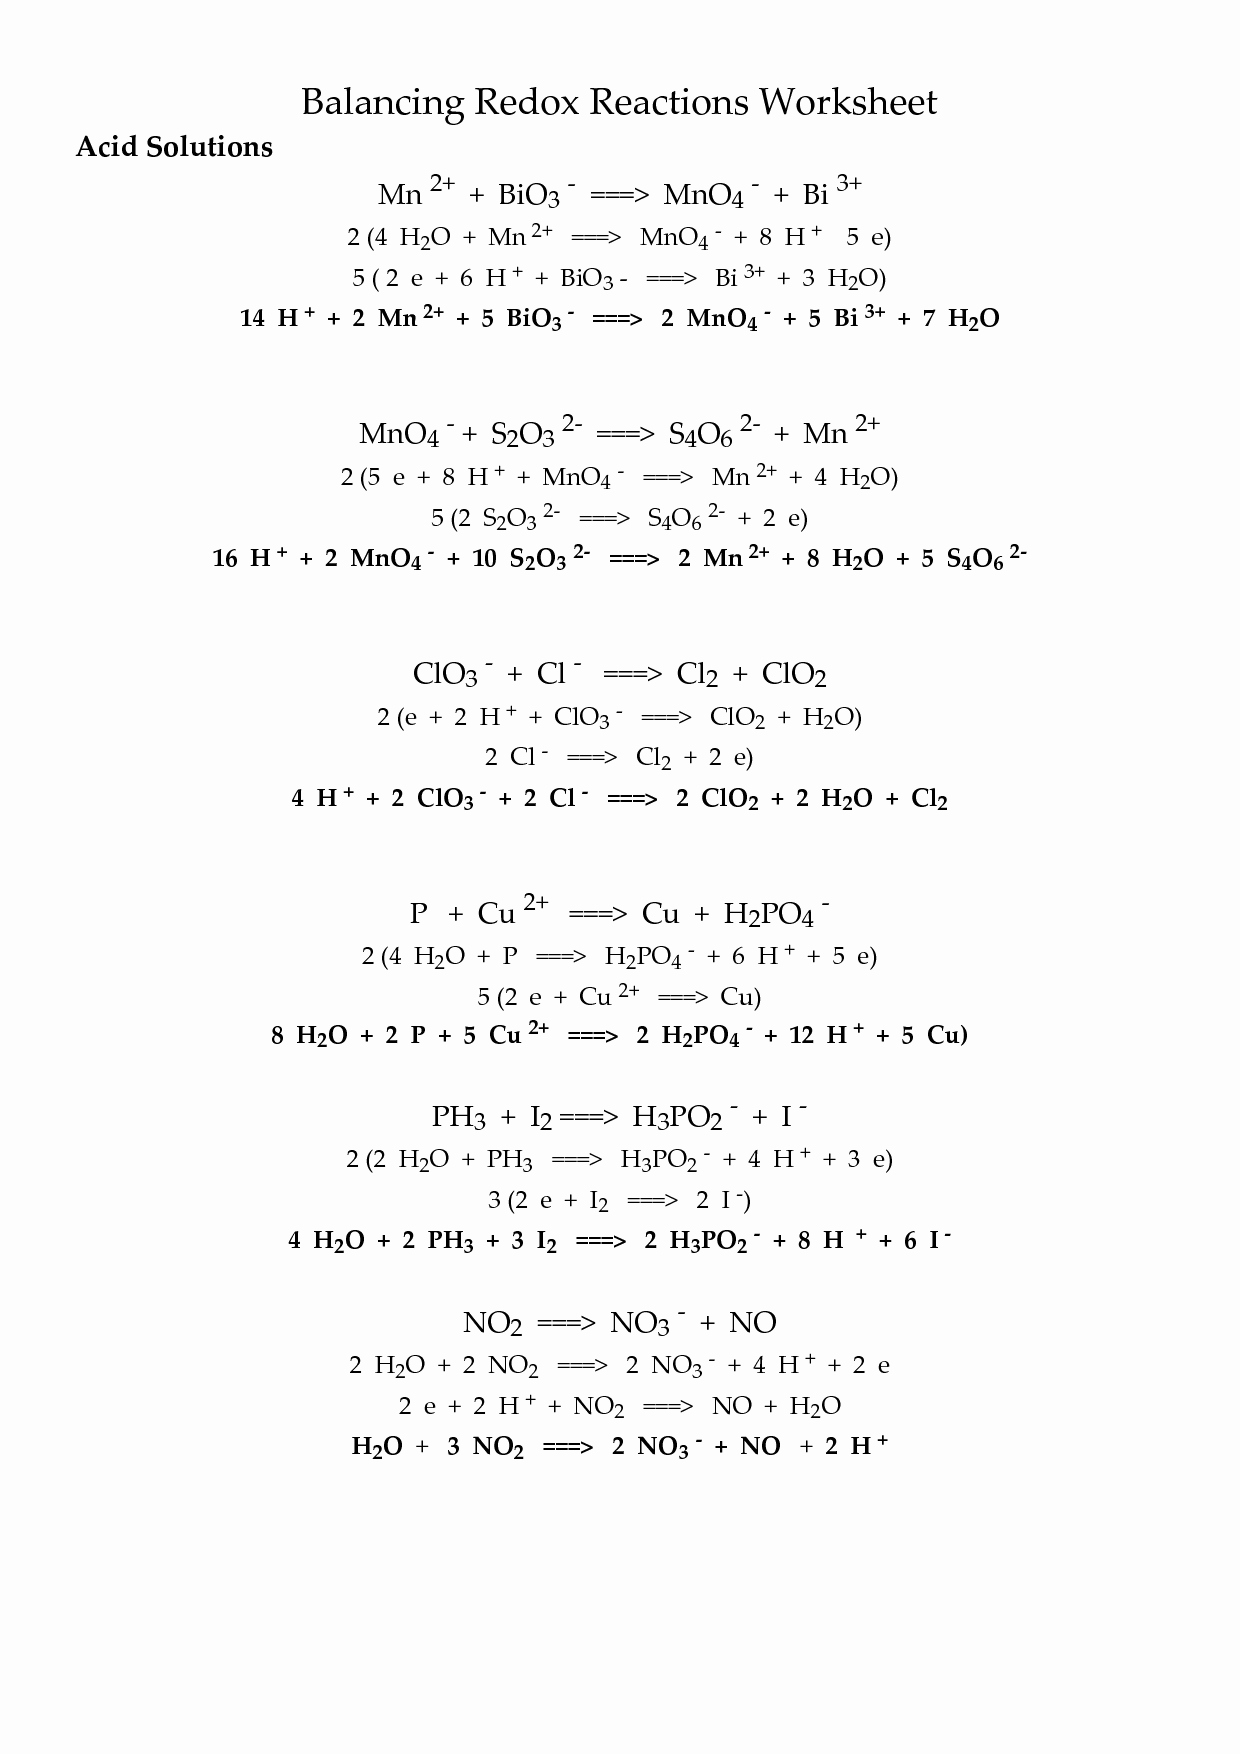 Oxidation and Reduction Worksheet New Oxidation Reduction Reactions Worksheet Pdf Promo Sapin De